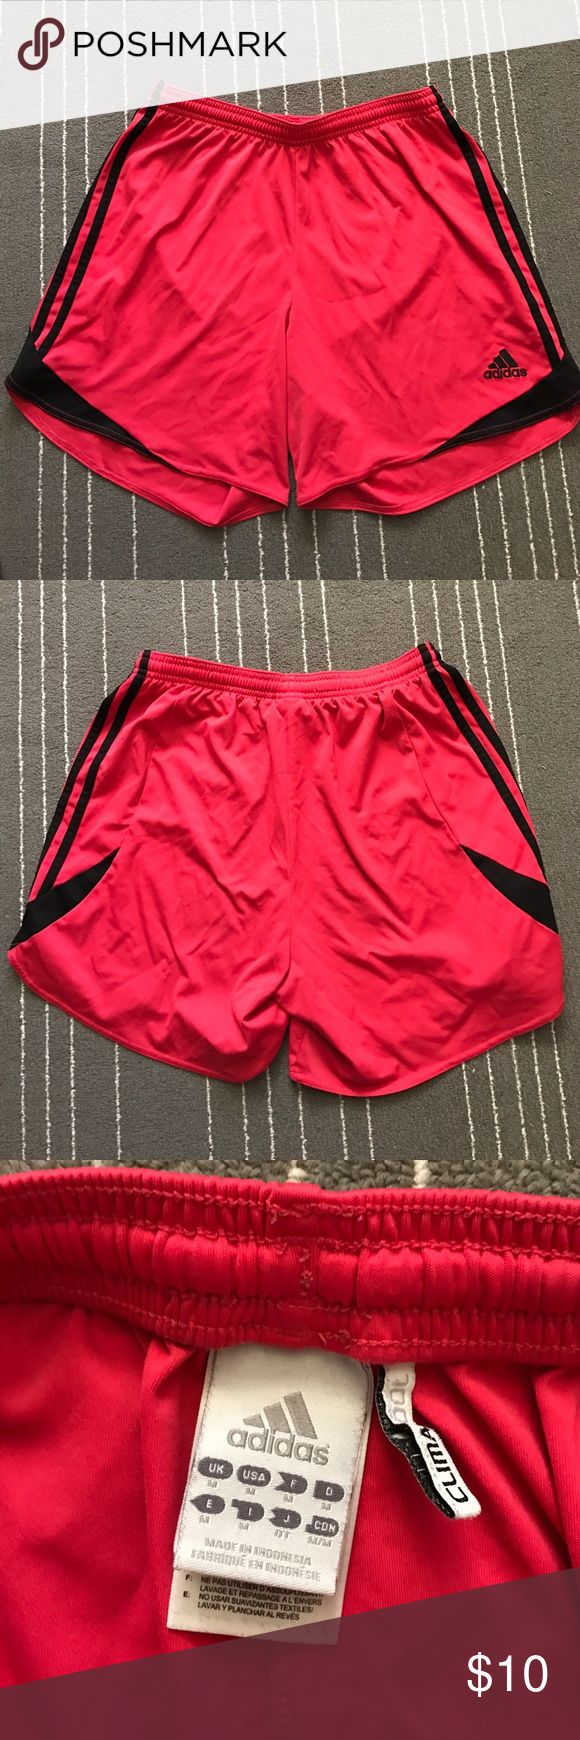 HOT PINK ADIDAS Soccer Shorts ADIDAS SOCCER SHORTS. IN GOOD CONDITION. Hot pink with black stripes down side! Adidas Shorts